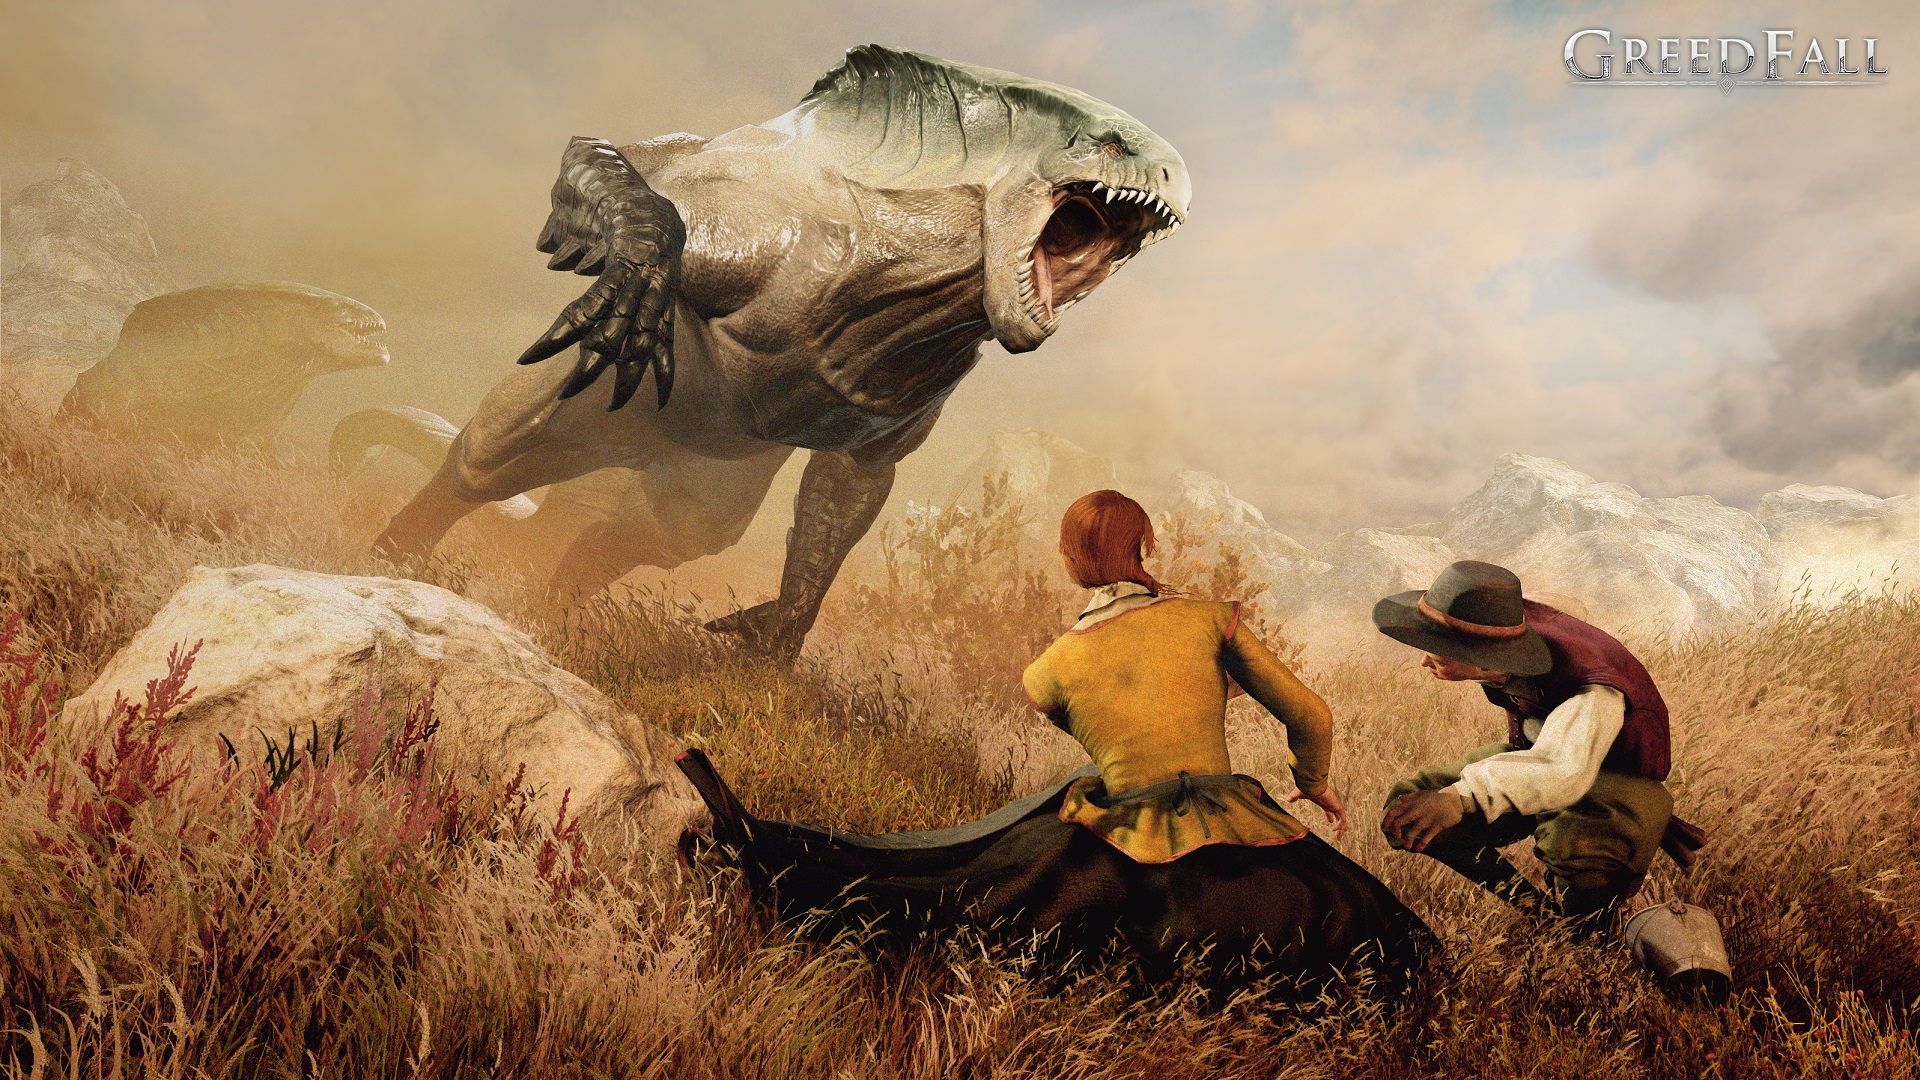 GreedFall Monster